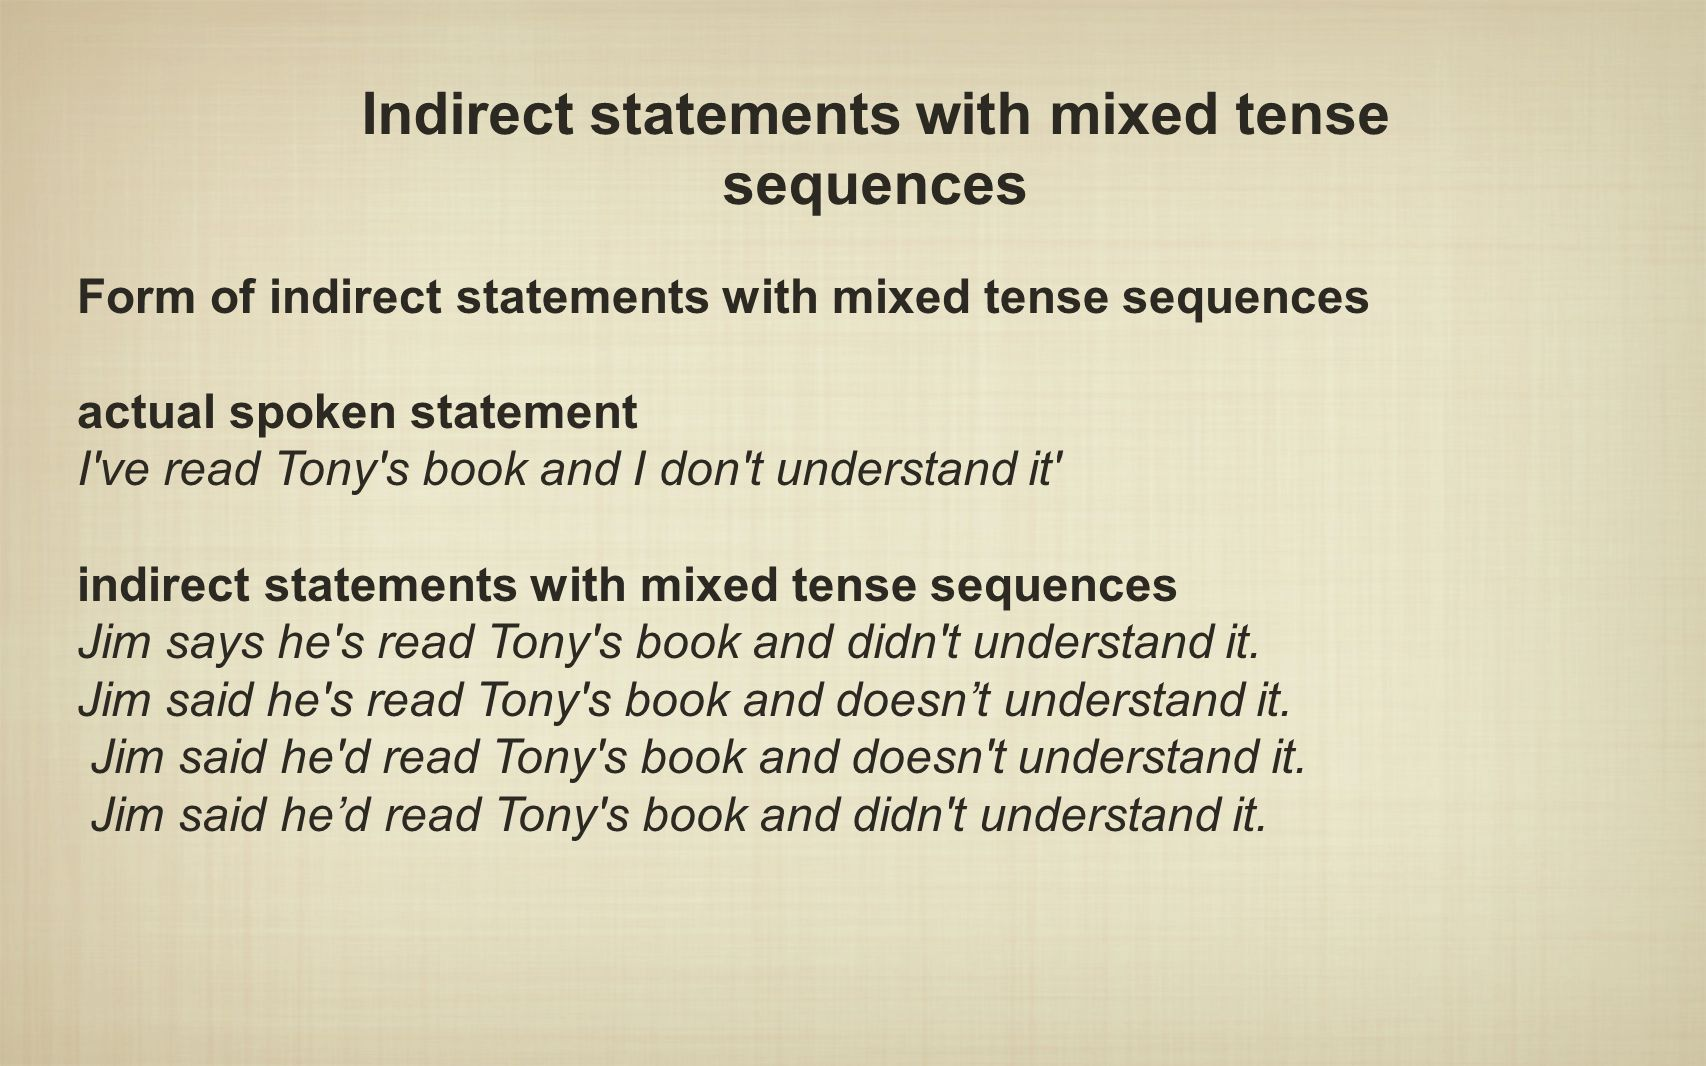 Indirect statements with mixed tense sequences